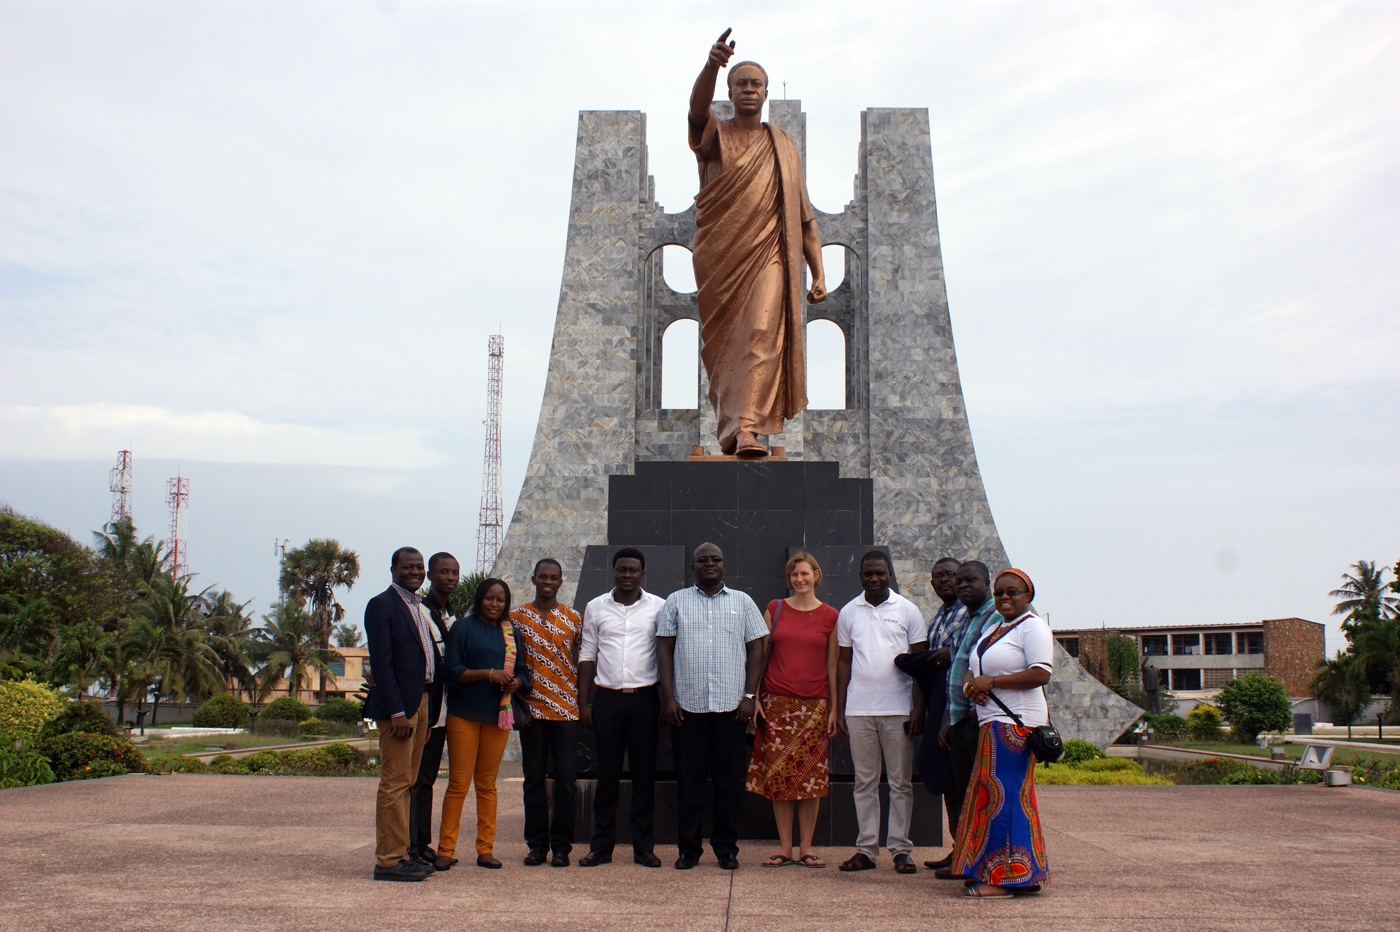 AGGN fellows in front of the Kwame Nkrumah statue in Accra/Ghana